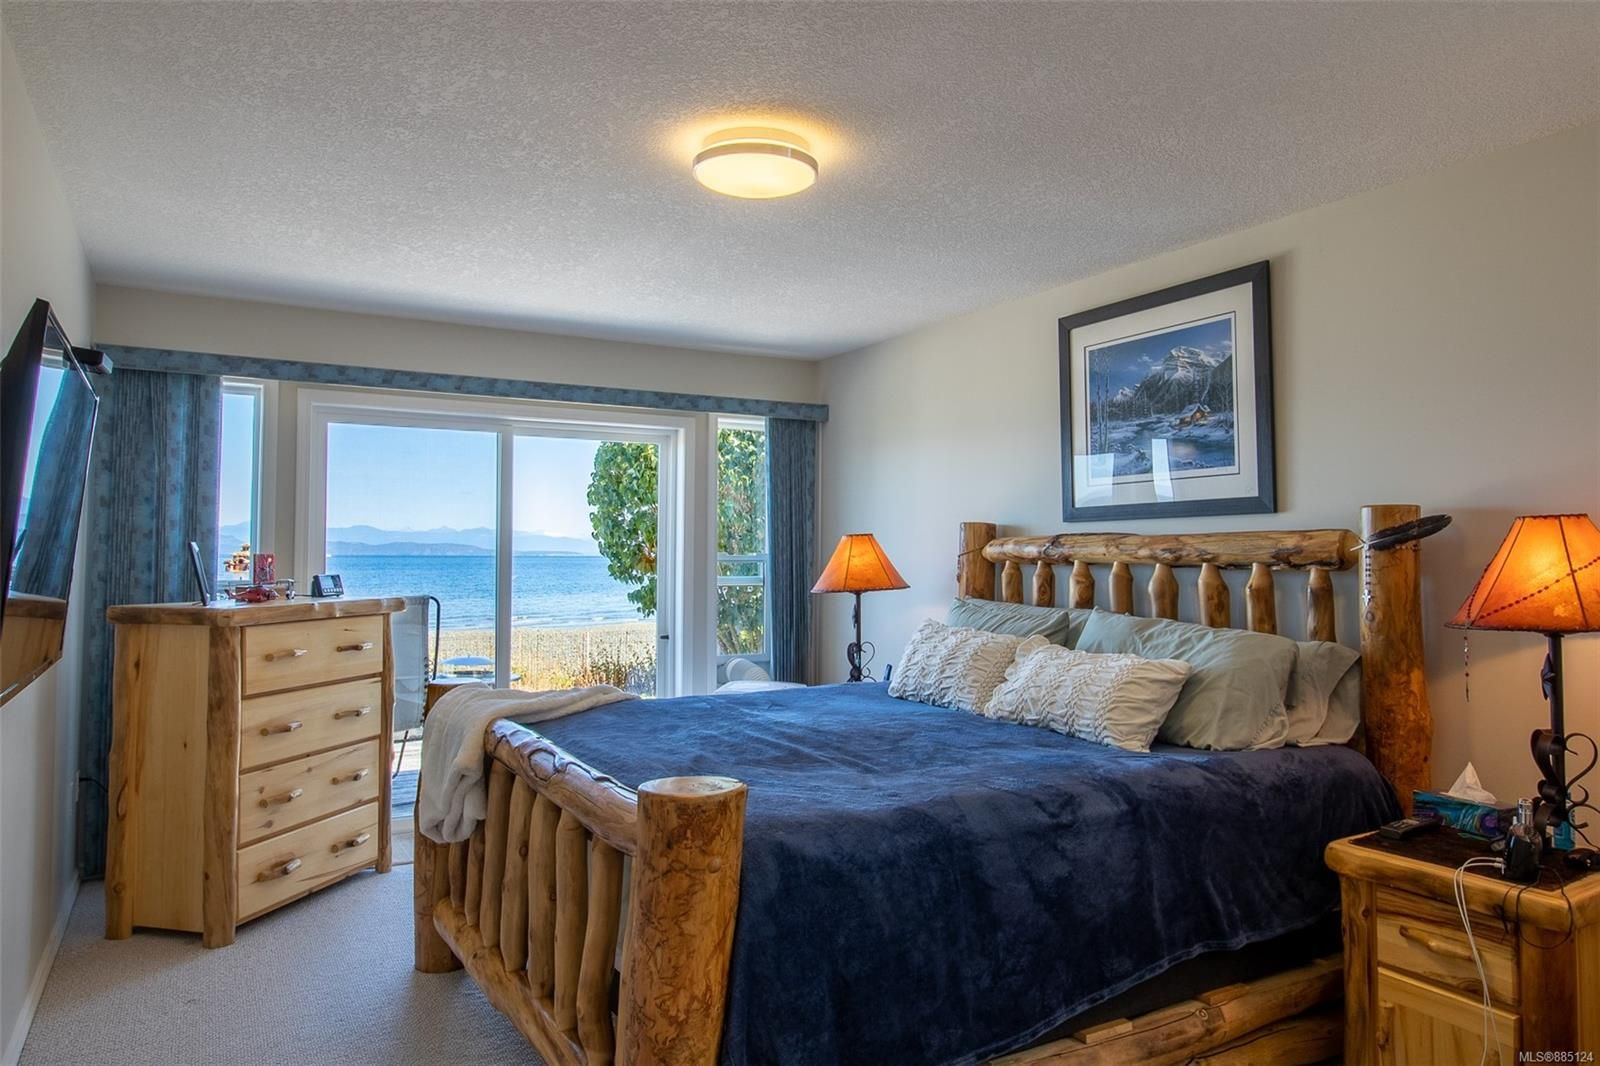 Photo 10: Photos: 1705 Admiral Tryon Blvd in : PQ French Creek House for sale (Parksville/Qualicum)  : MLS®# 885124